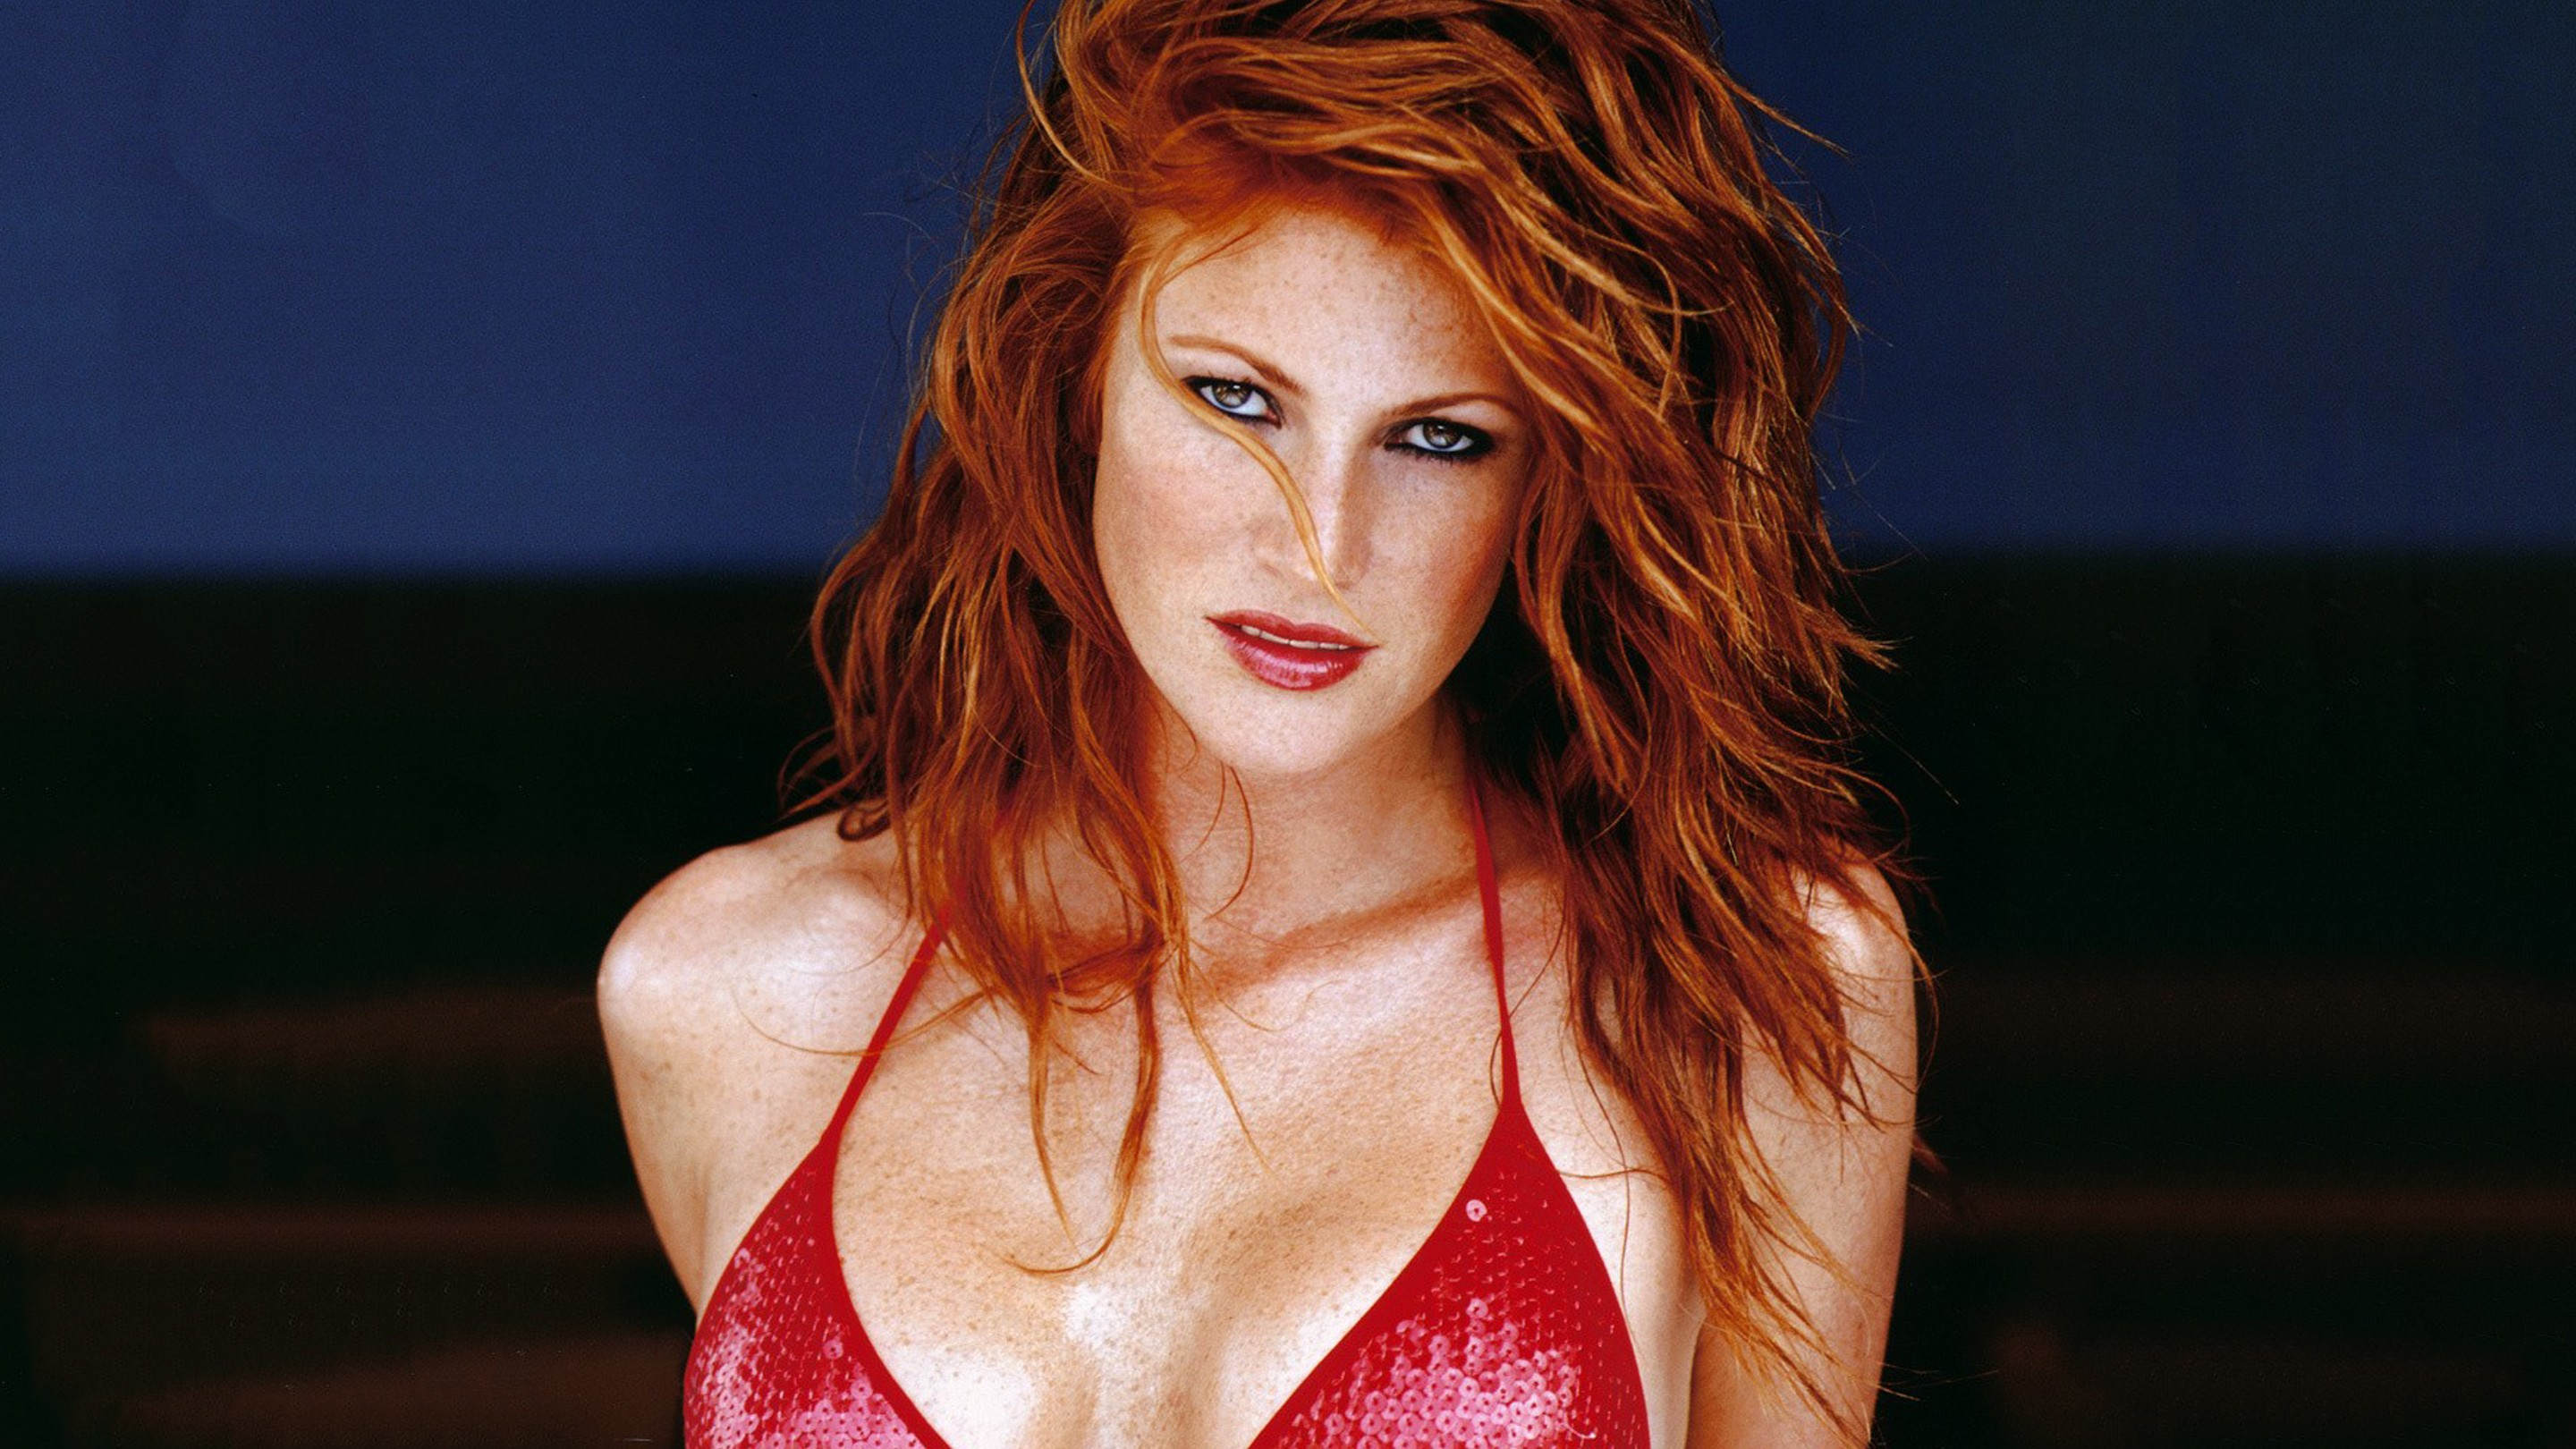 Angie everhart nude remarkable